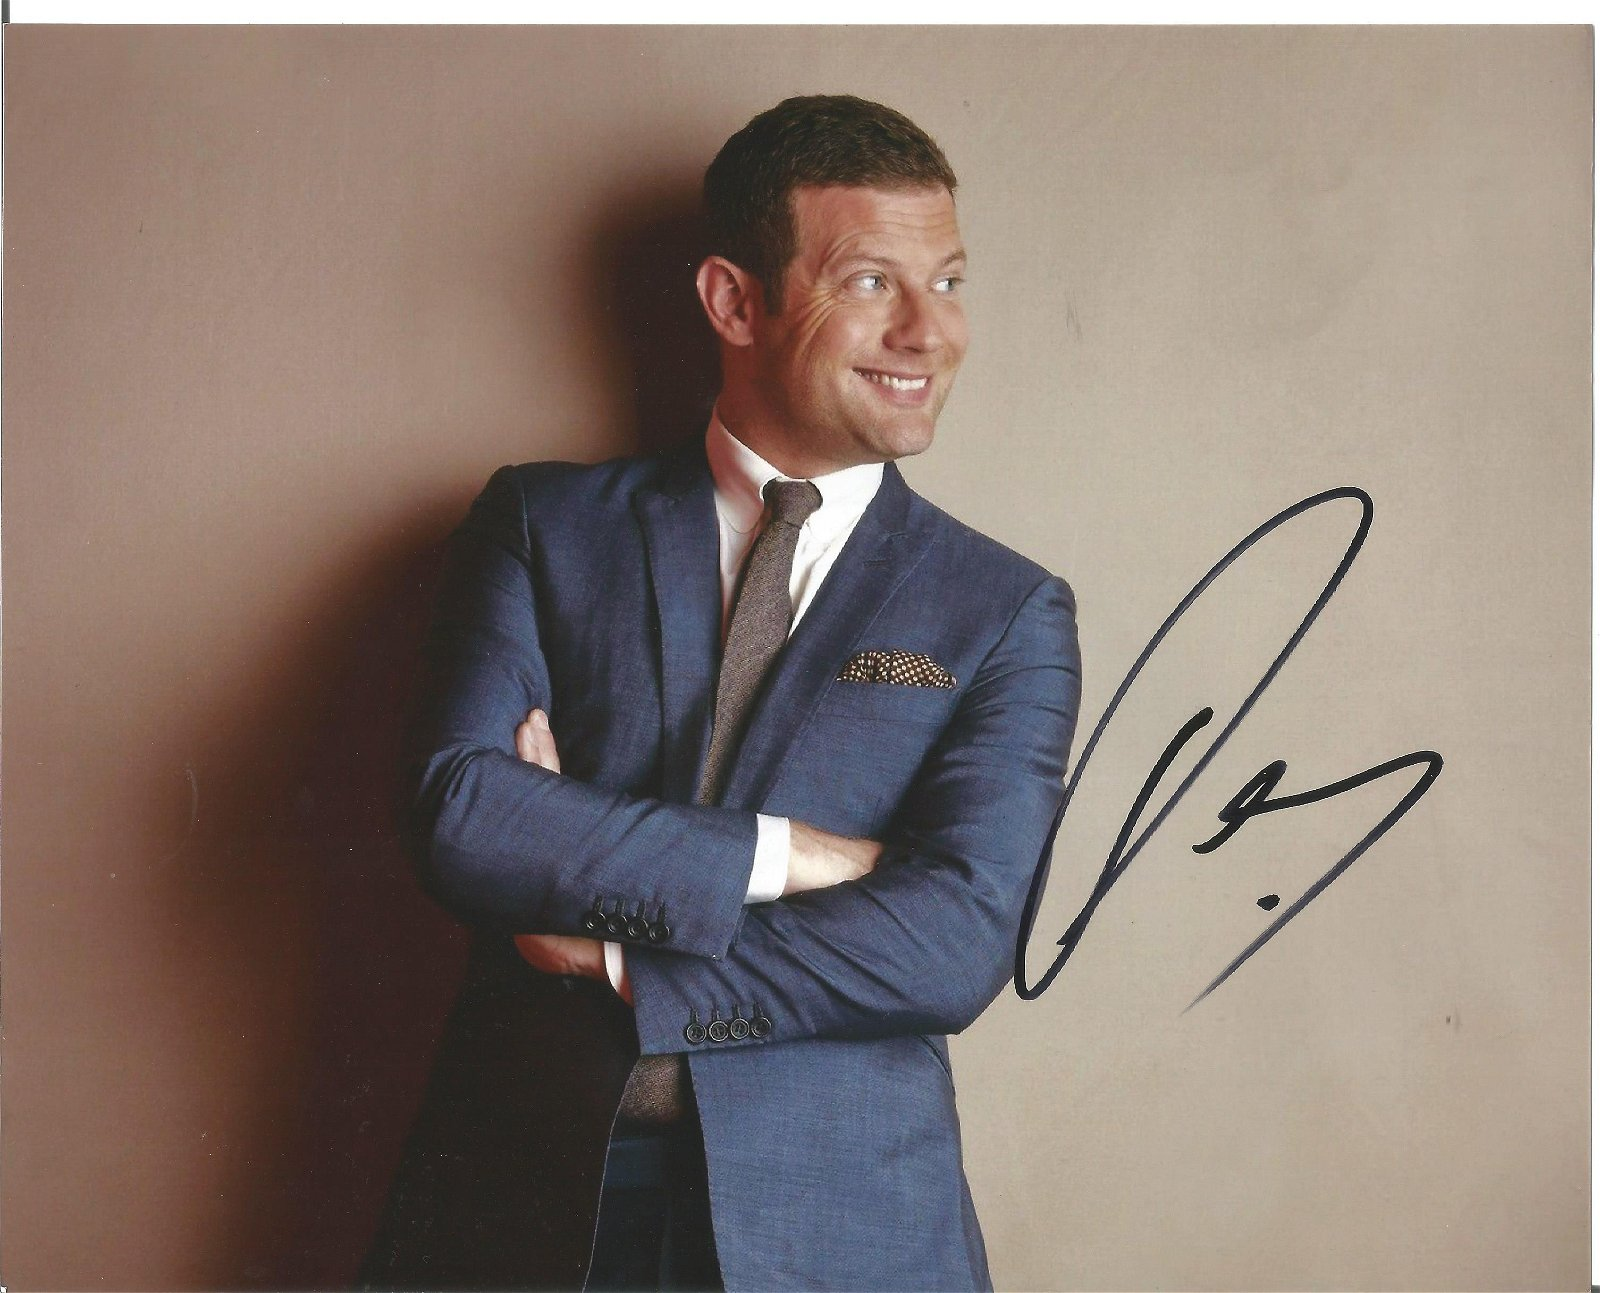 Dermot O'Leary Presenter Signed 8x10 Photo . Good